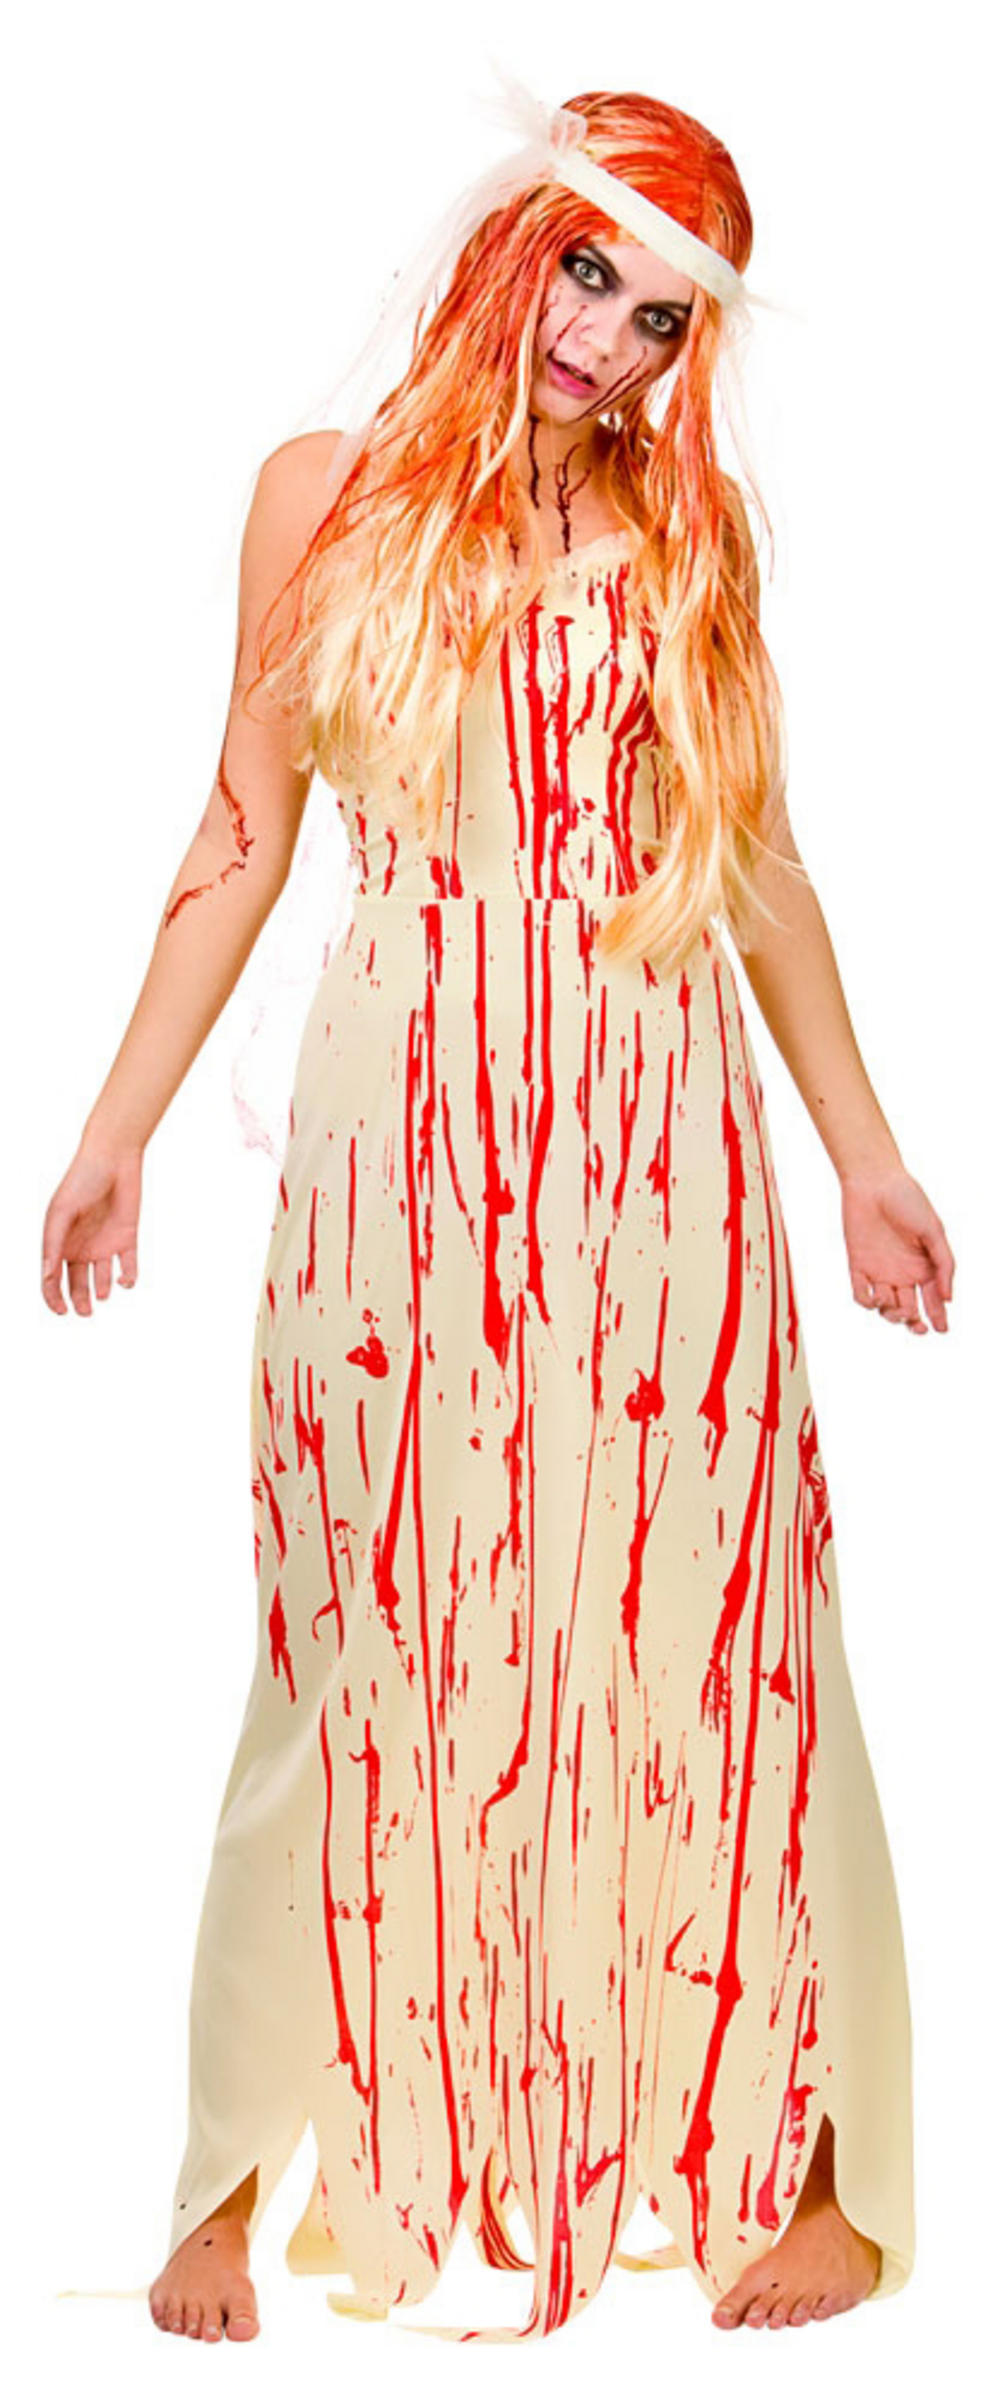 Ladies Blood Covered Bride/Prom Girl Costume